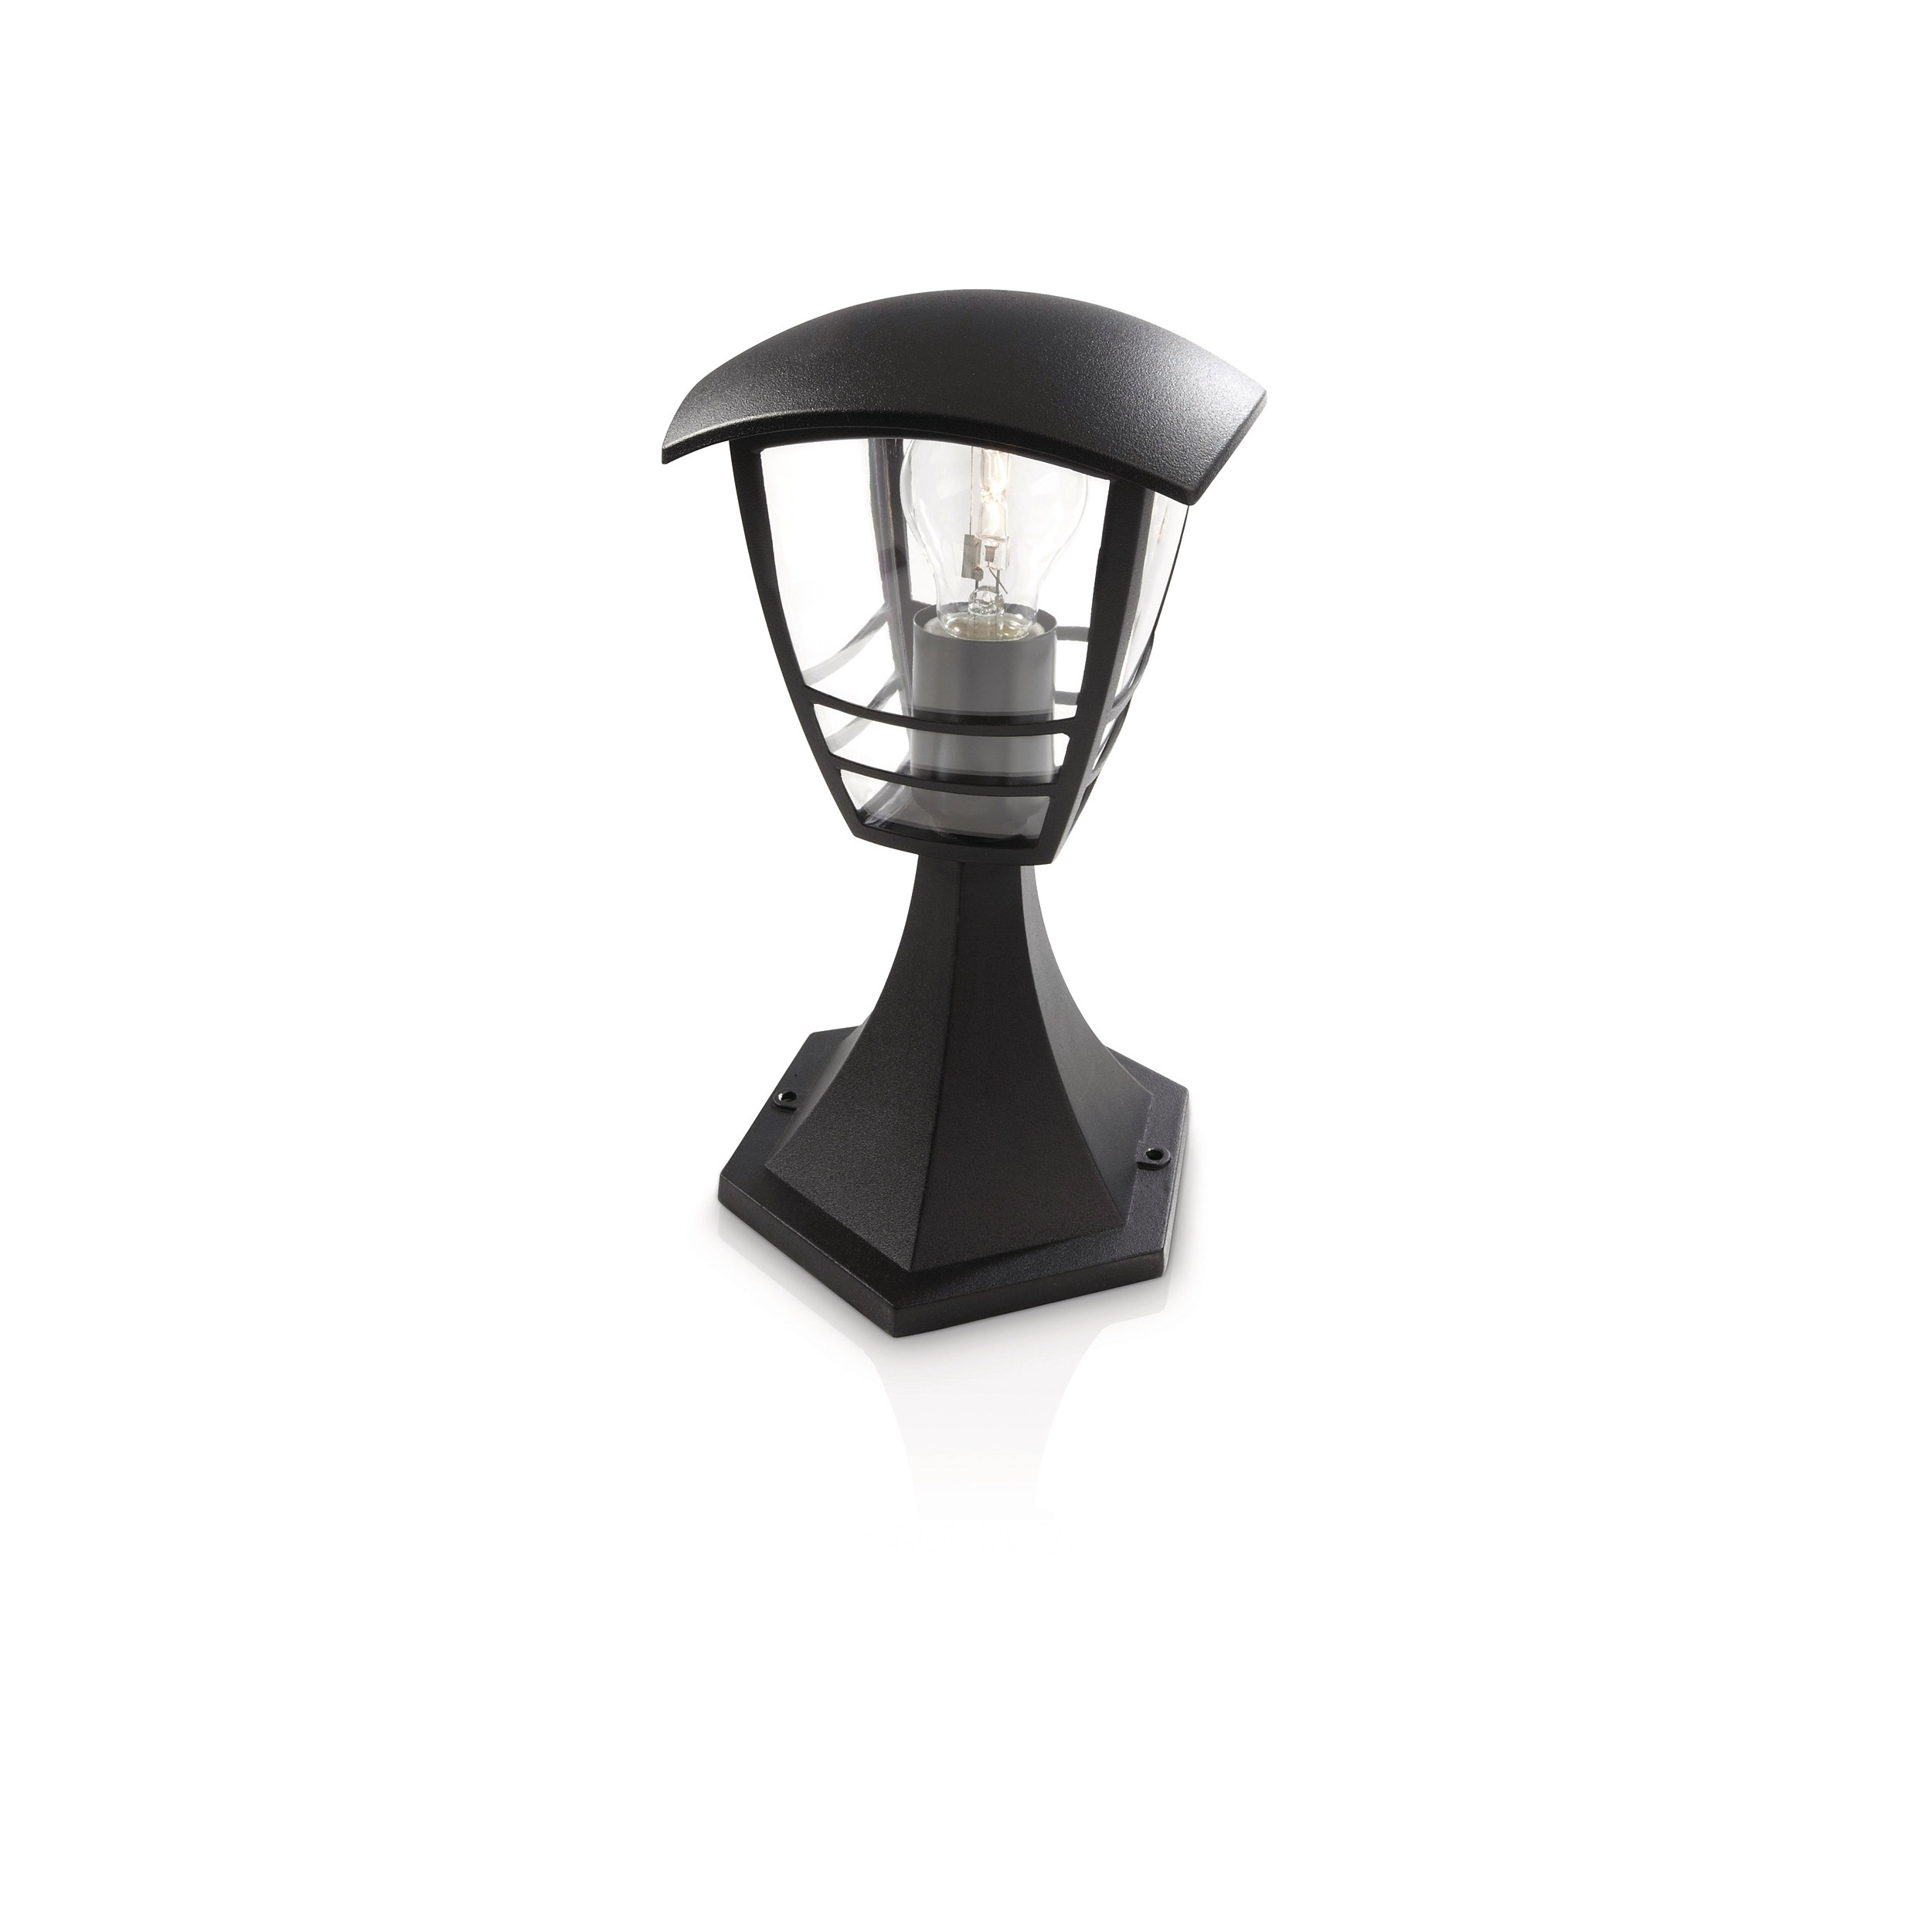 philips mygarden borne potelet eclairage ext rieur traditionnel lampe 153823016 ebay. Black Bedroom Furniture Sets. Home Design Ideas